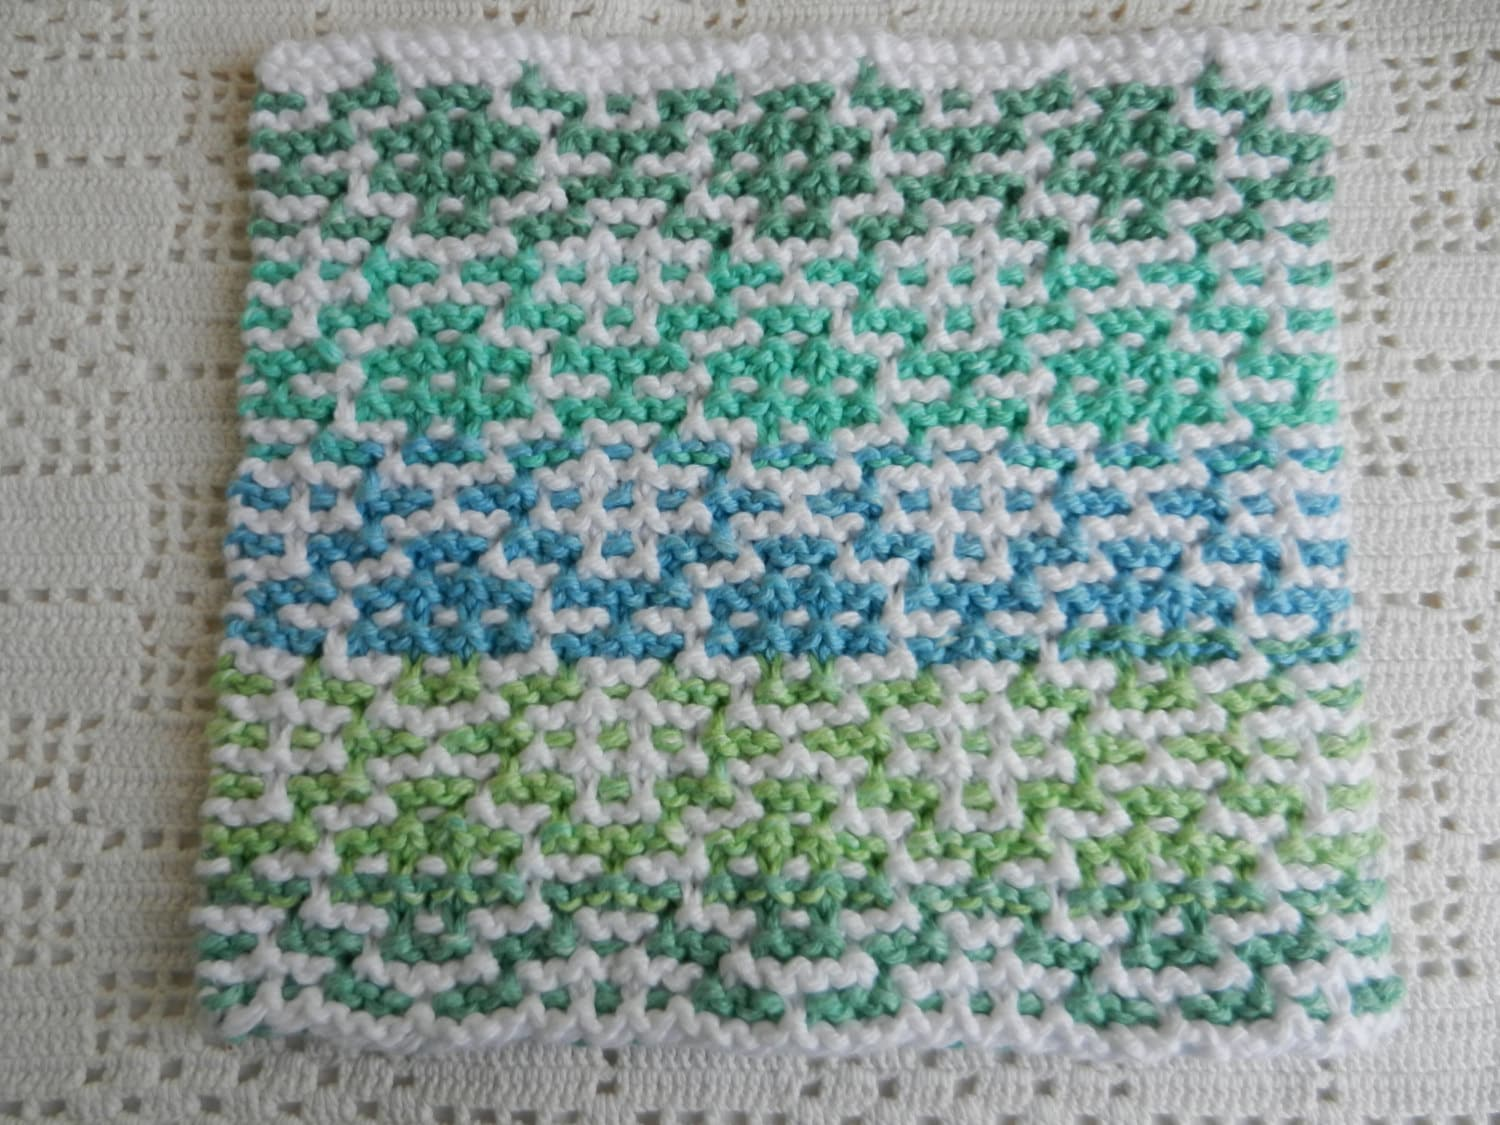 Knitted Spa Cloth, Shades of Blue and Green Stripes w/ White ...